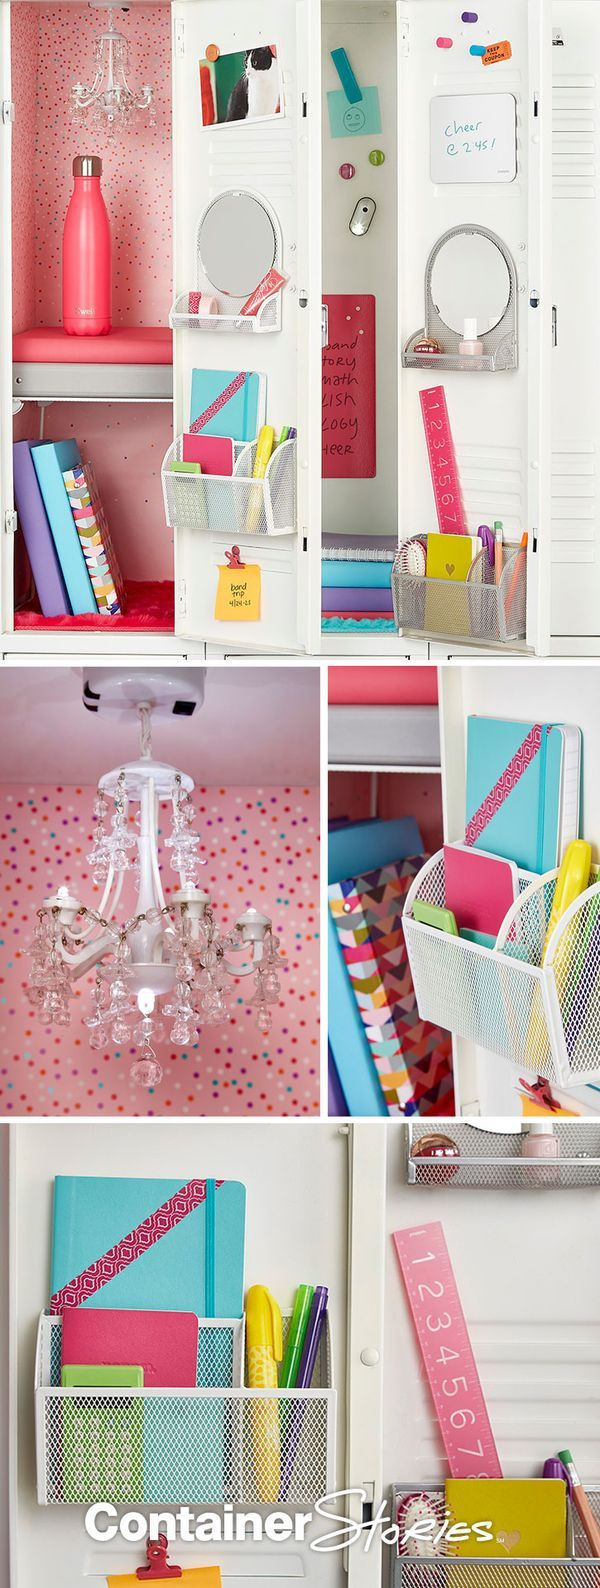 Best ideas about DIY Locker Decorations And Organization . Save or Pin Best 25 Locker decorations ideas on Pinterest Now.